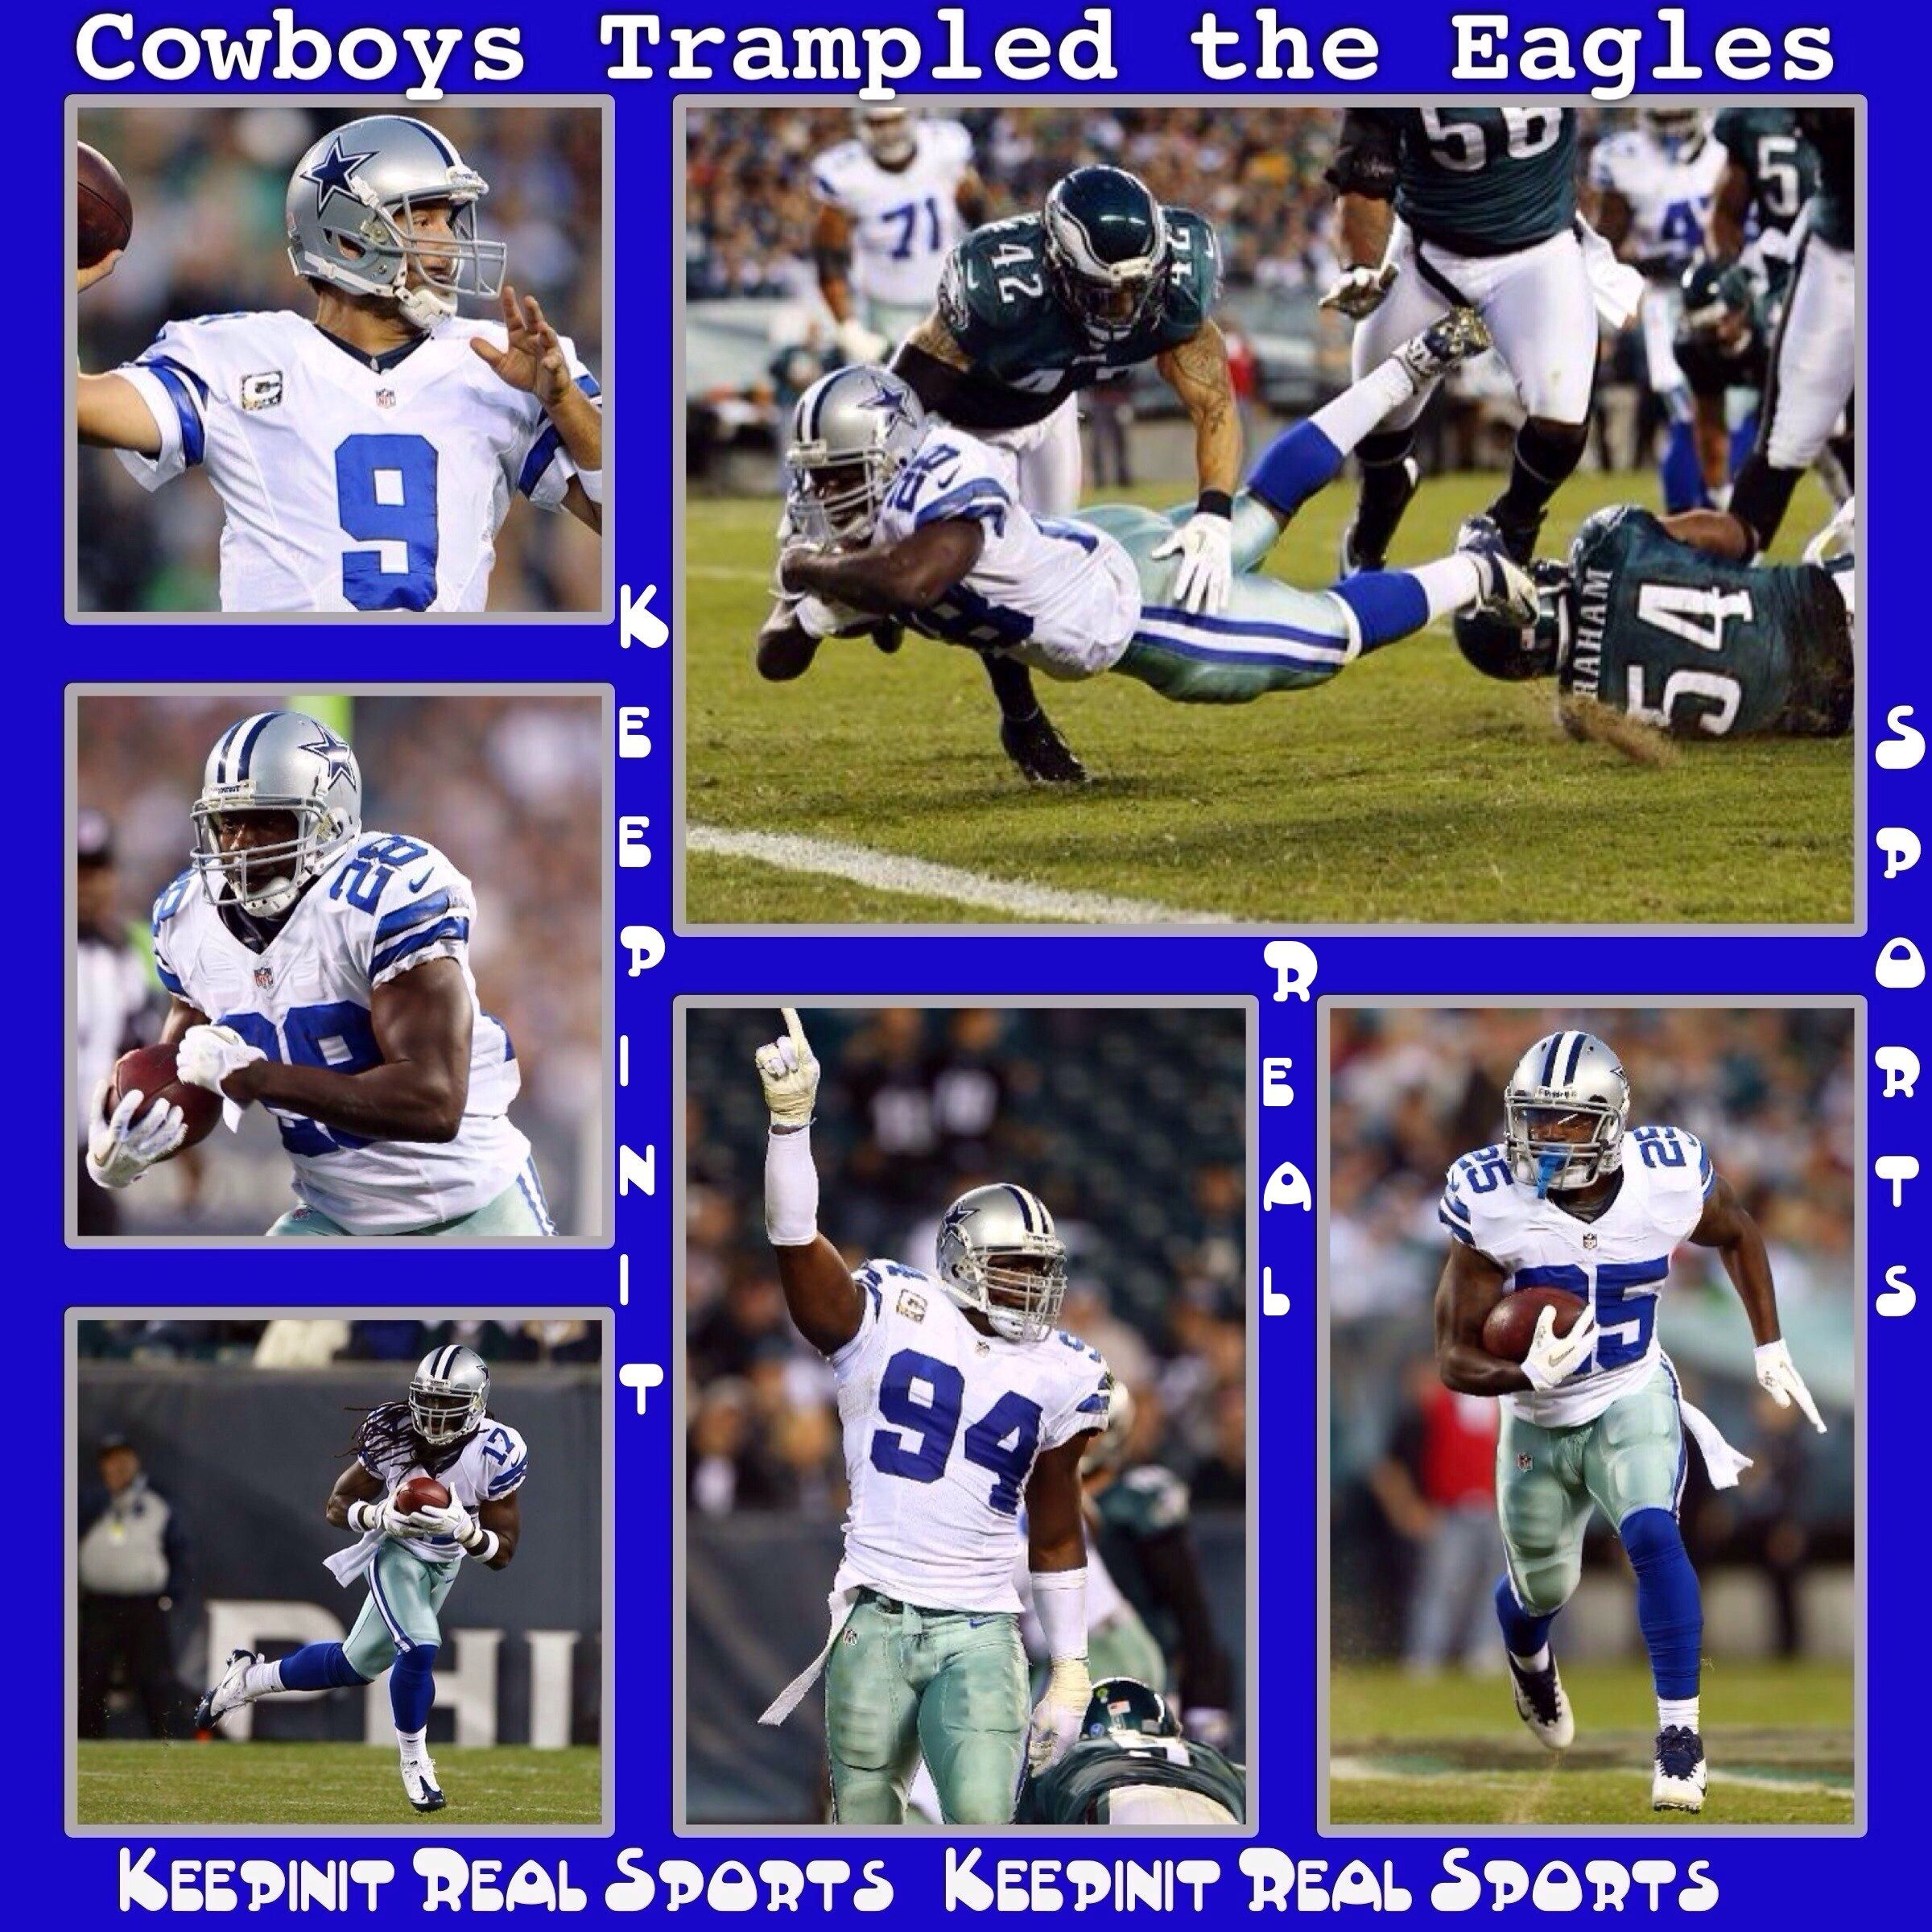 Keepinit Real Nfl Stats Cowboys Vs Eagles Cowboys 38 4 5 3 3 Away Eagles 23 3 6 2 3 Home Final Top Performers Passing With Images Nfl Stats Cowboys Vs Sports